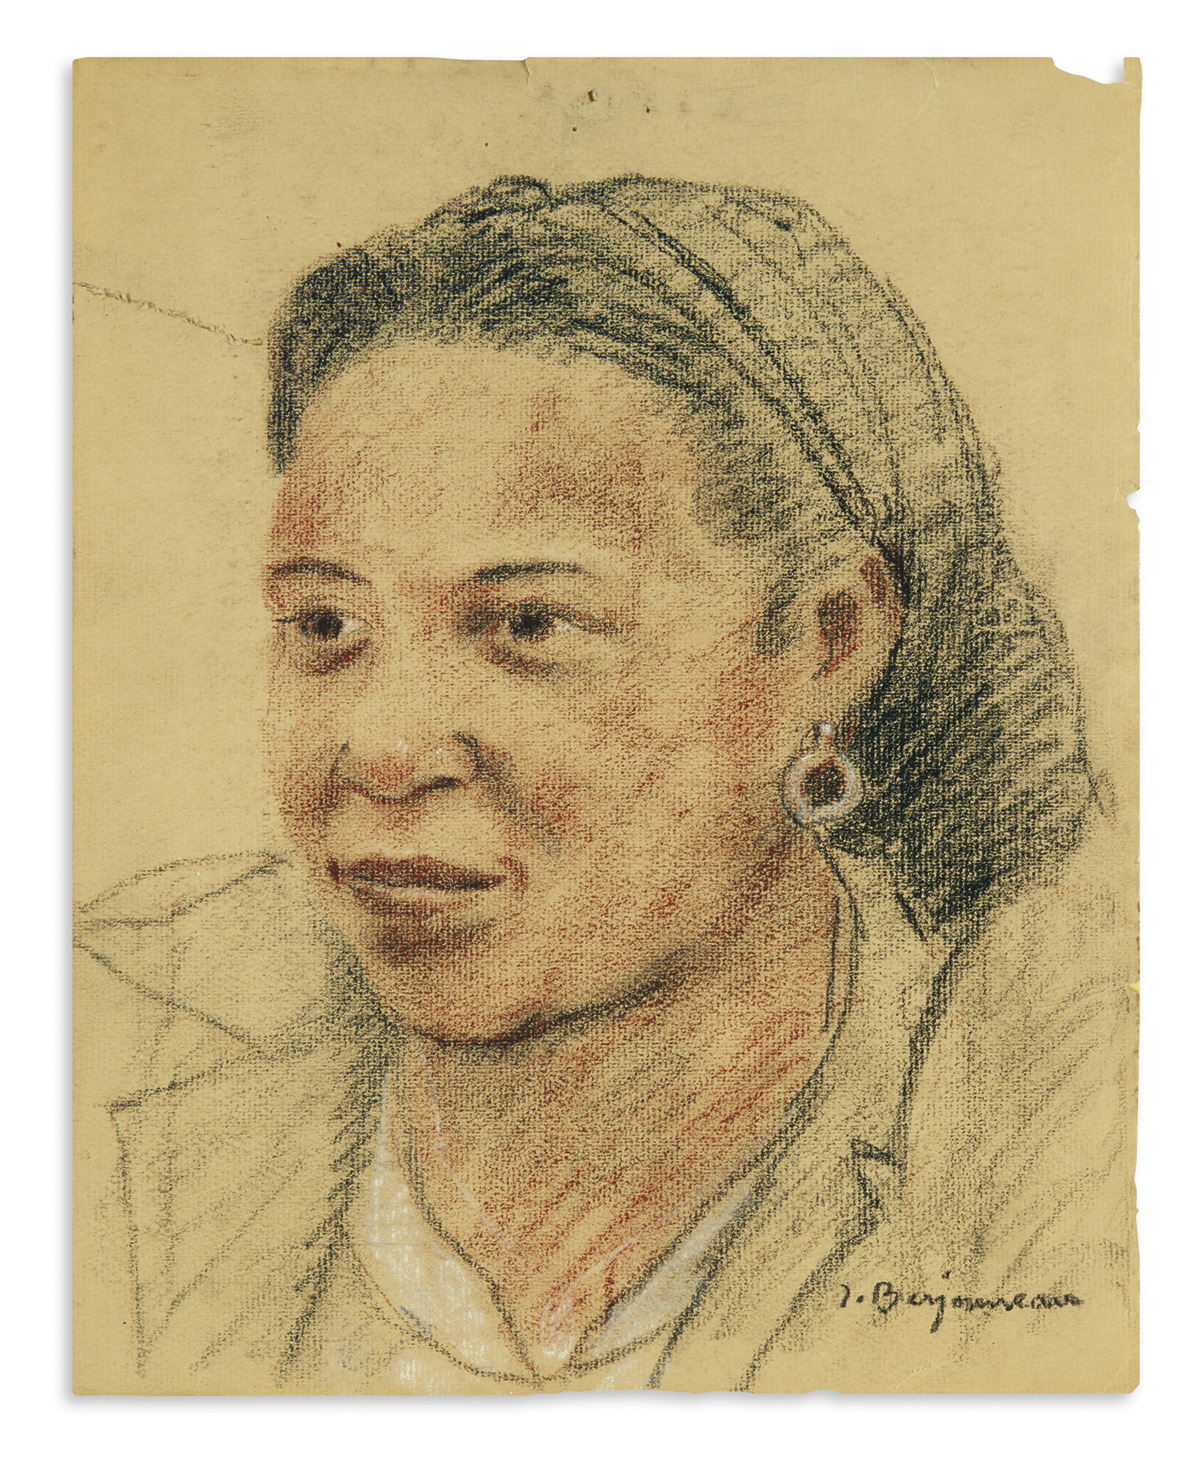 (ART.) Group of 3 portraits of Loïs Mailou Jones by various artists.